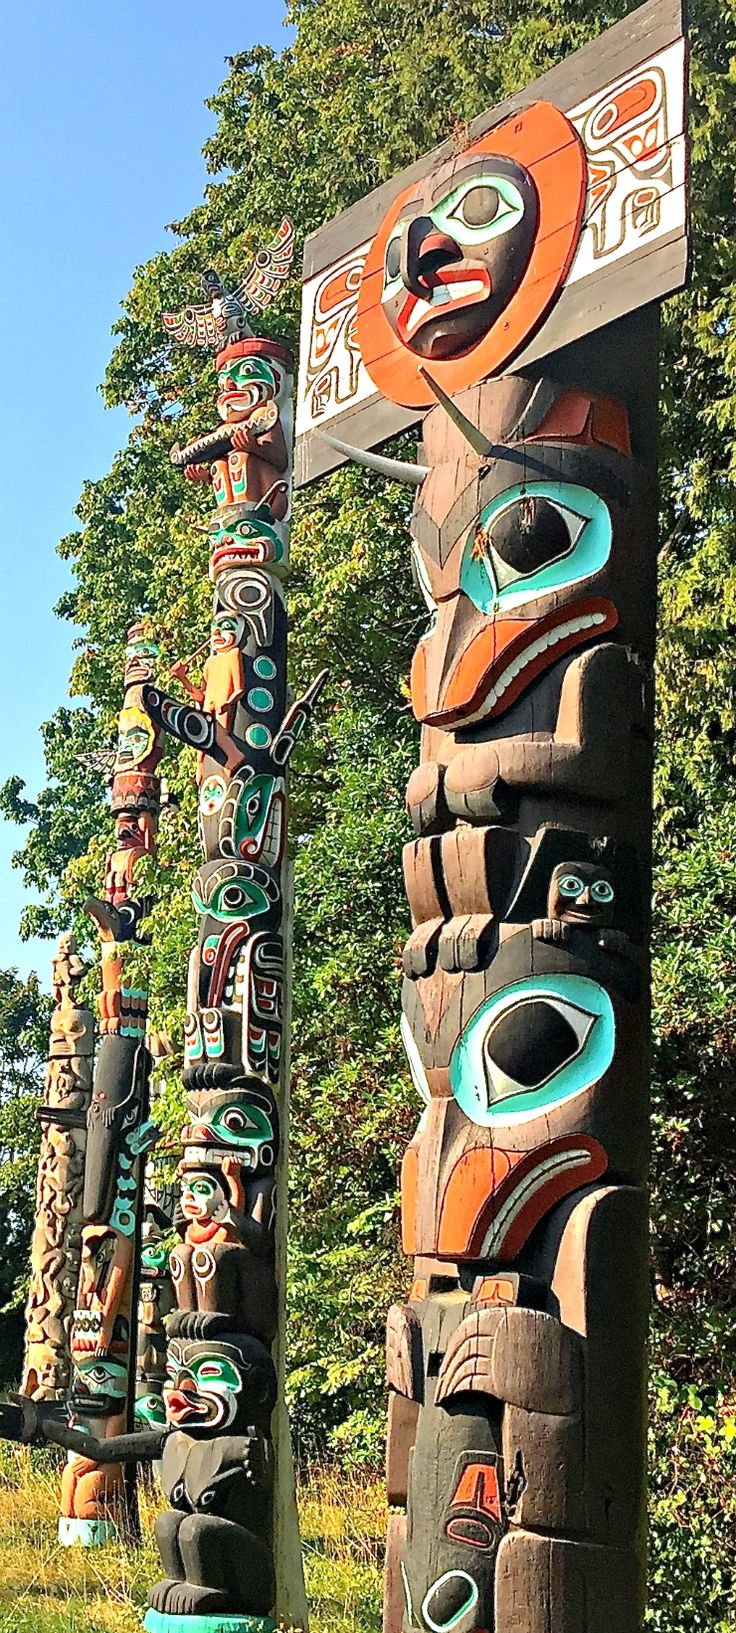 First Nations #totempoles in Vancouver, Canada's Stanley Park via @rtwgirl